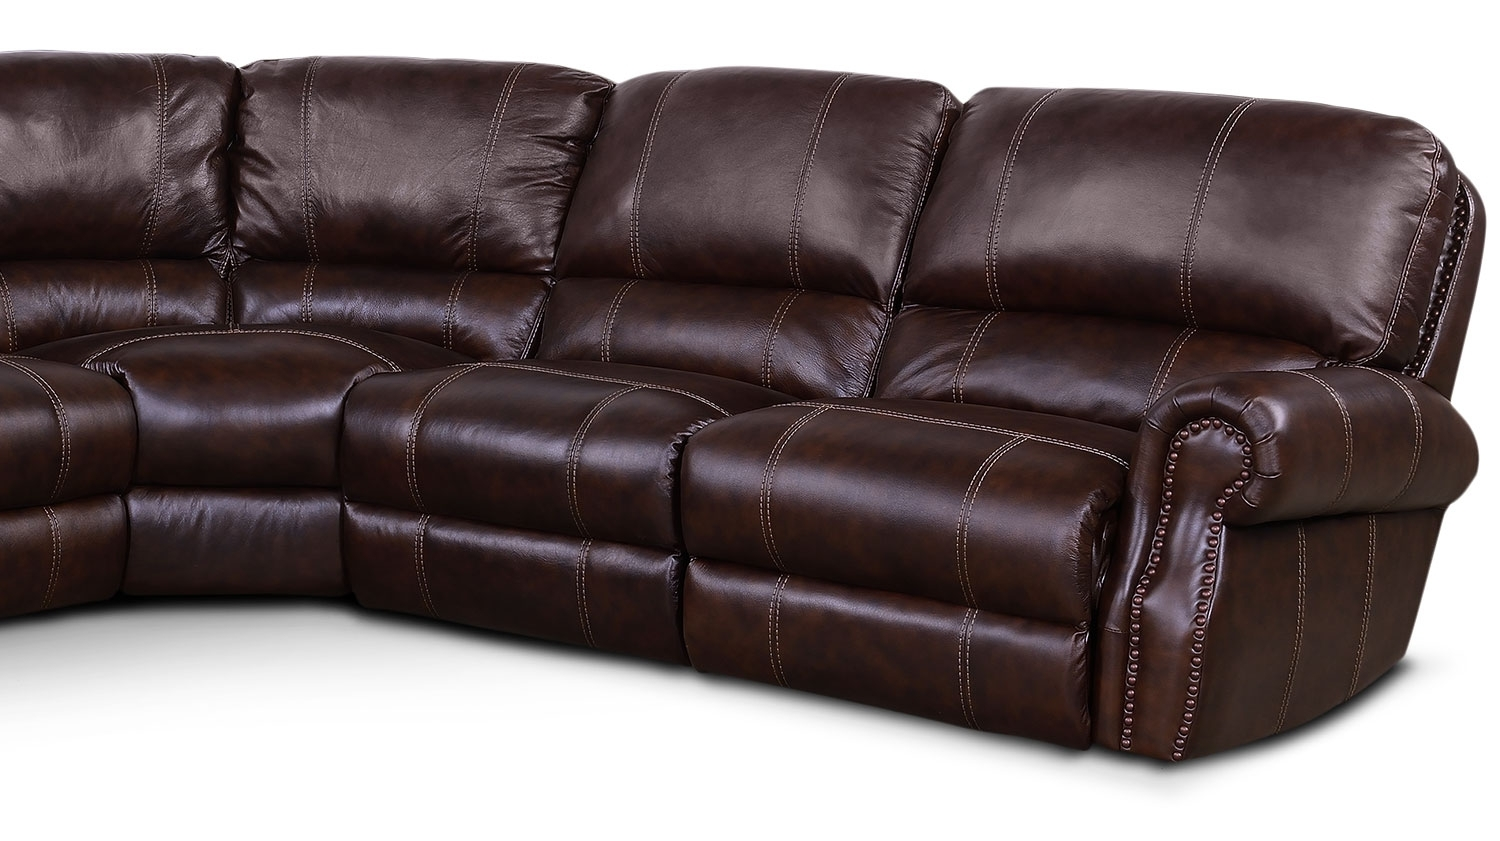 Dartmouth 6 Piece Power Reclining Sectional W/ Left Facing Chaise Pertaining To Norfolk Chocolate 6 Piece Sectionals With Laf Chaise (Image 7 of 25)